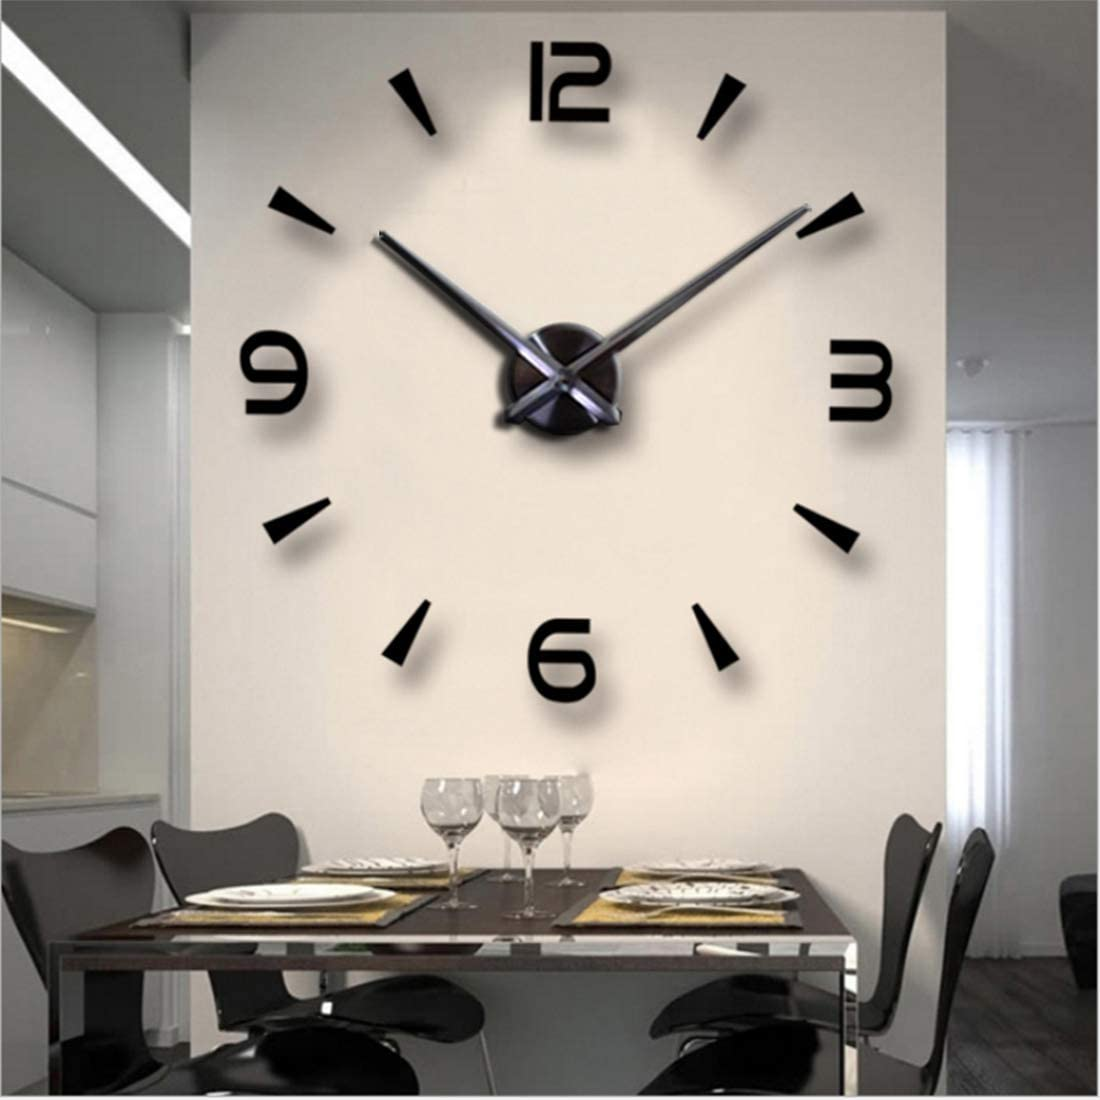 Fashion In The City 3d Diy Wall Clock Creative Design Mirror Surface Wall Decorative Sticker Watches Black Amazon Co Uk Kitchen Home